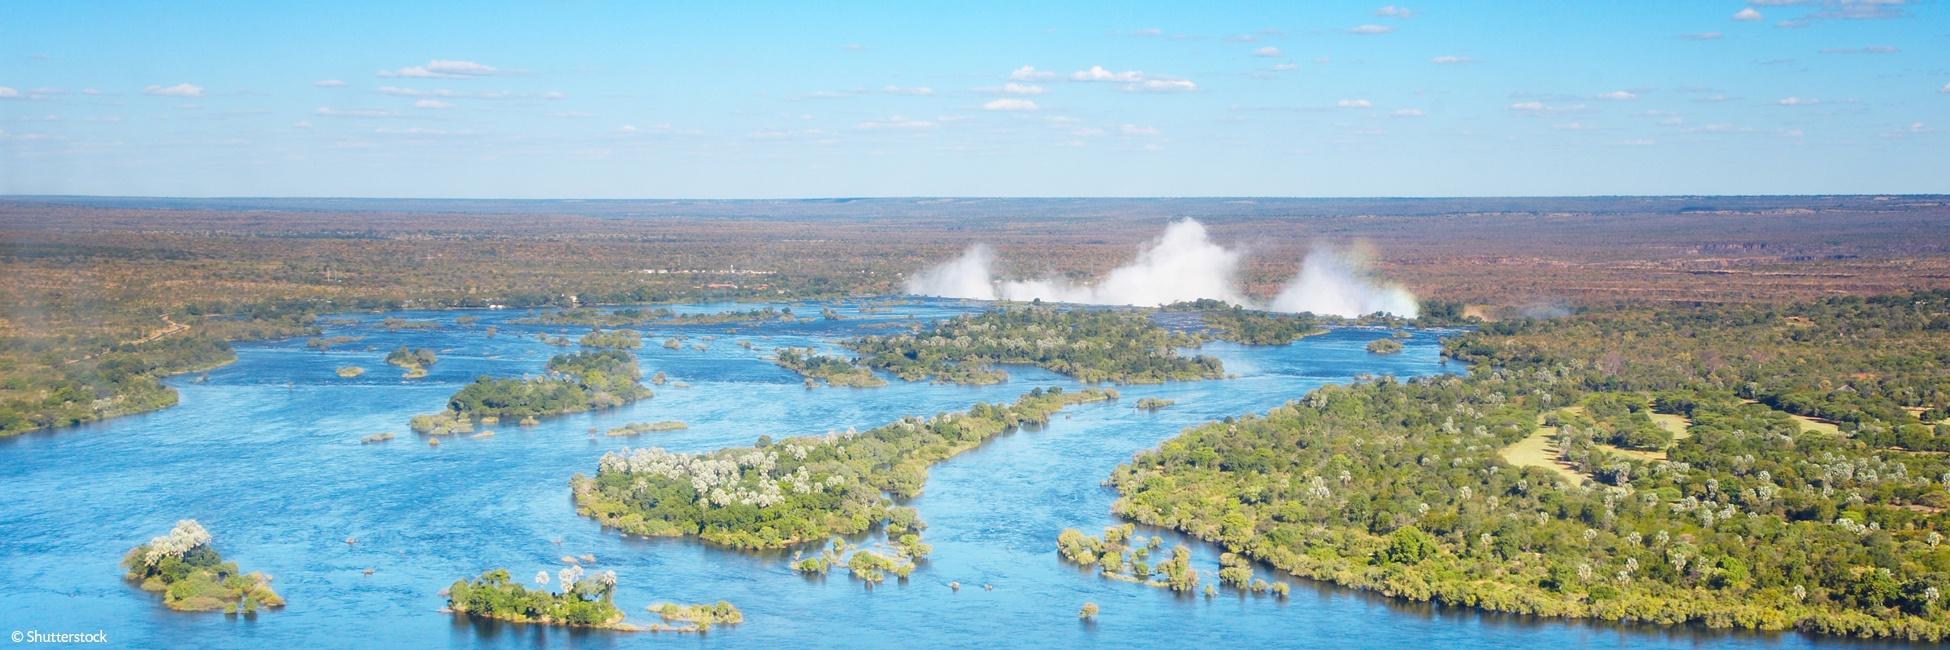 Afbeeldingsresultaat voor croisi europe south africa namibia south africa vic falls